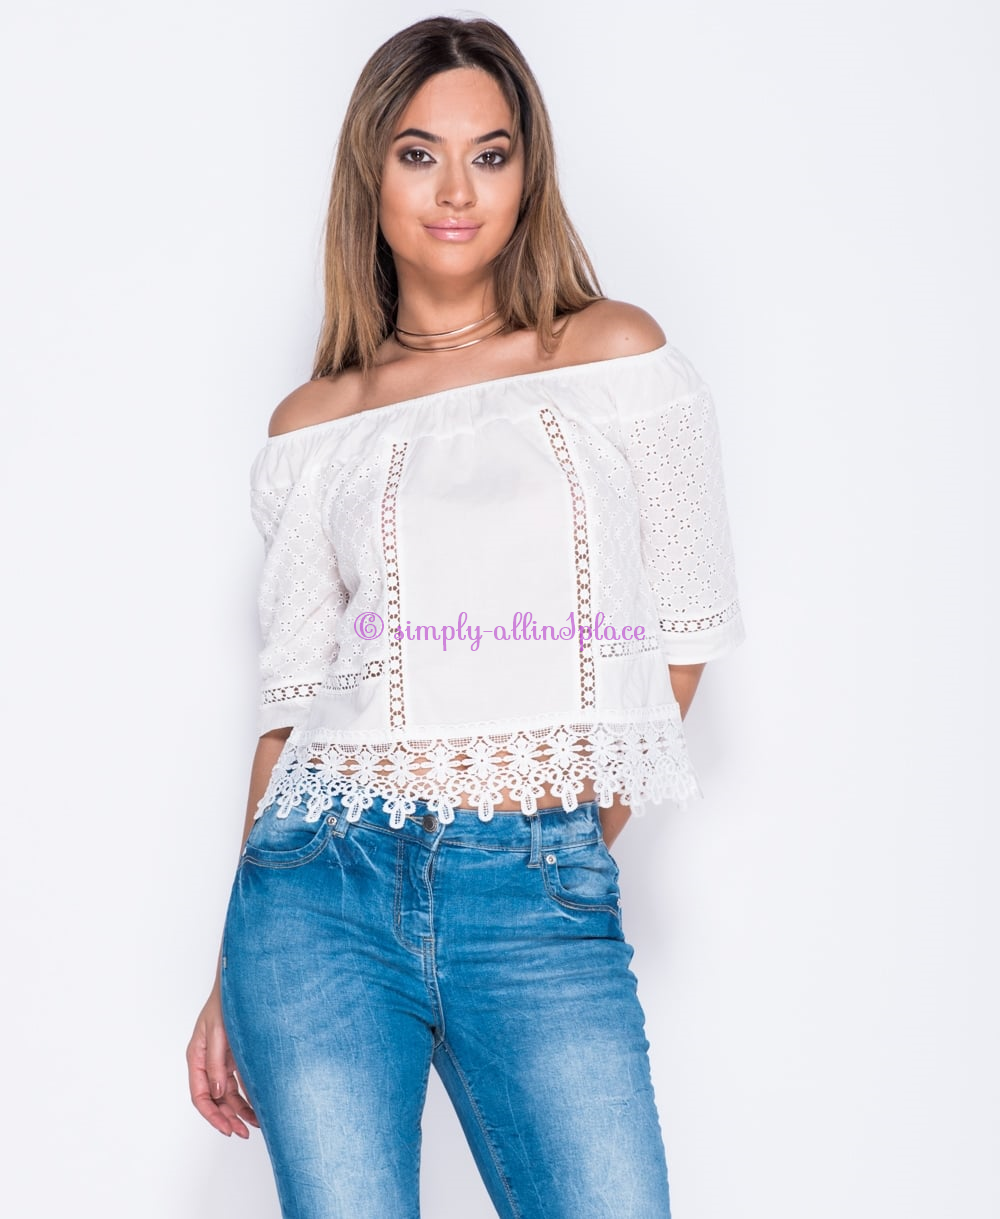 Crochet Lace Trim Short Sleeve Bardot Top - Stock Item